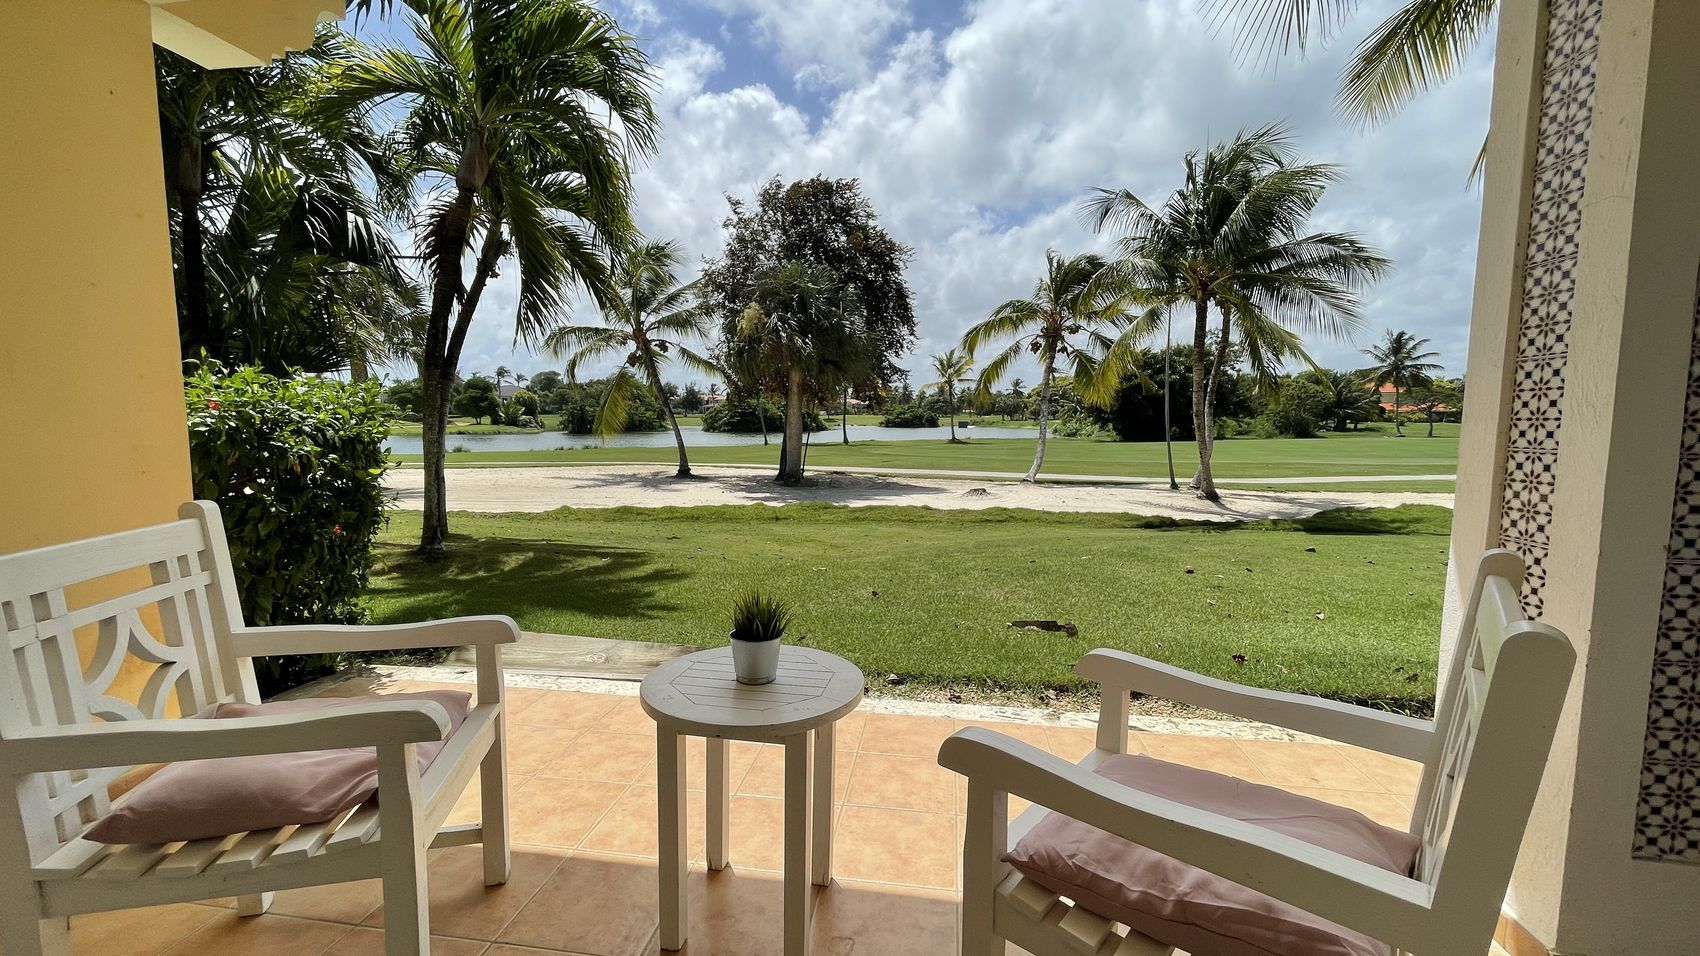 Apartment with golf view in Cocotal, Bavaro (7092-GS)